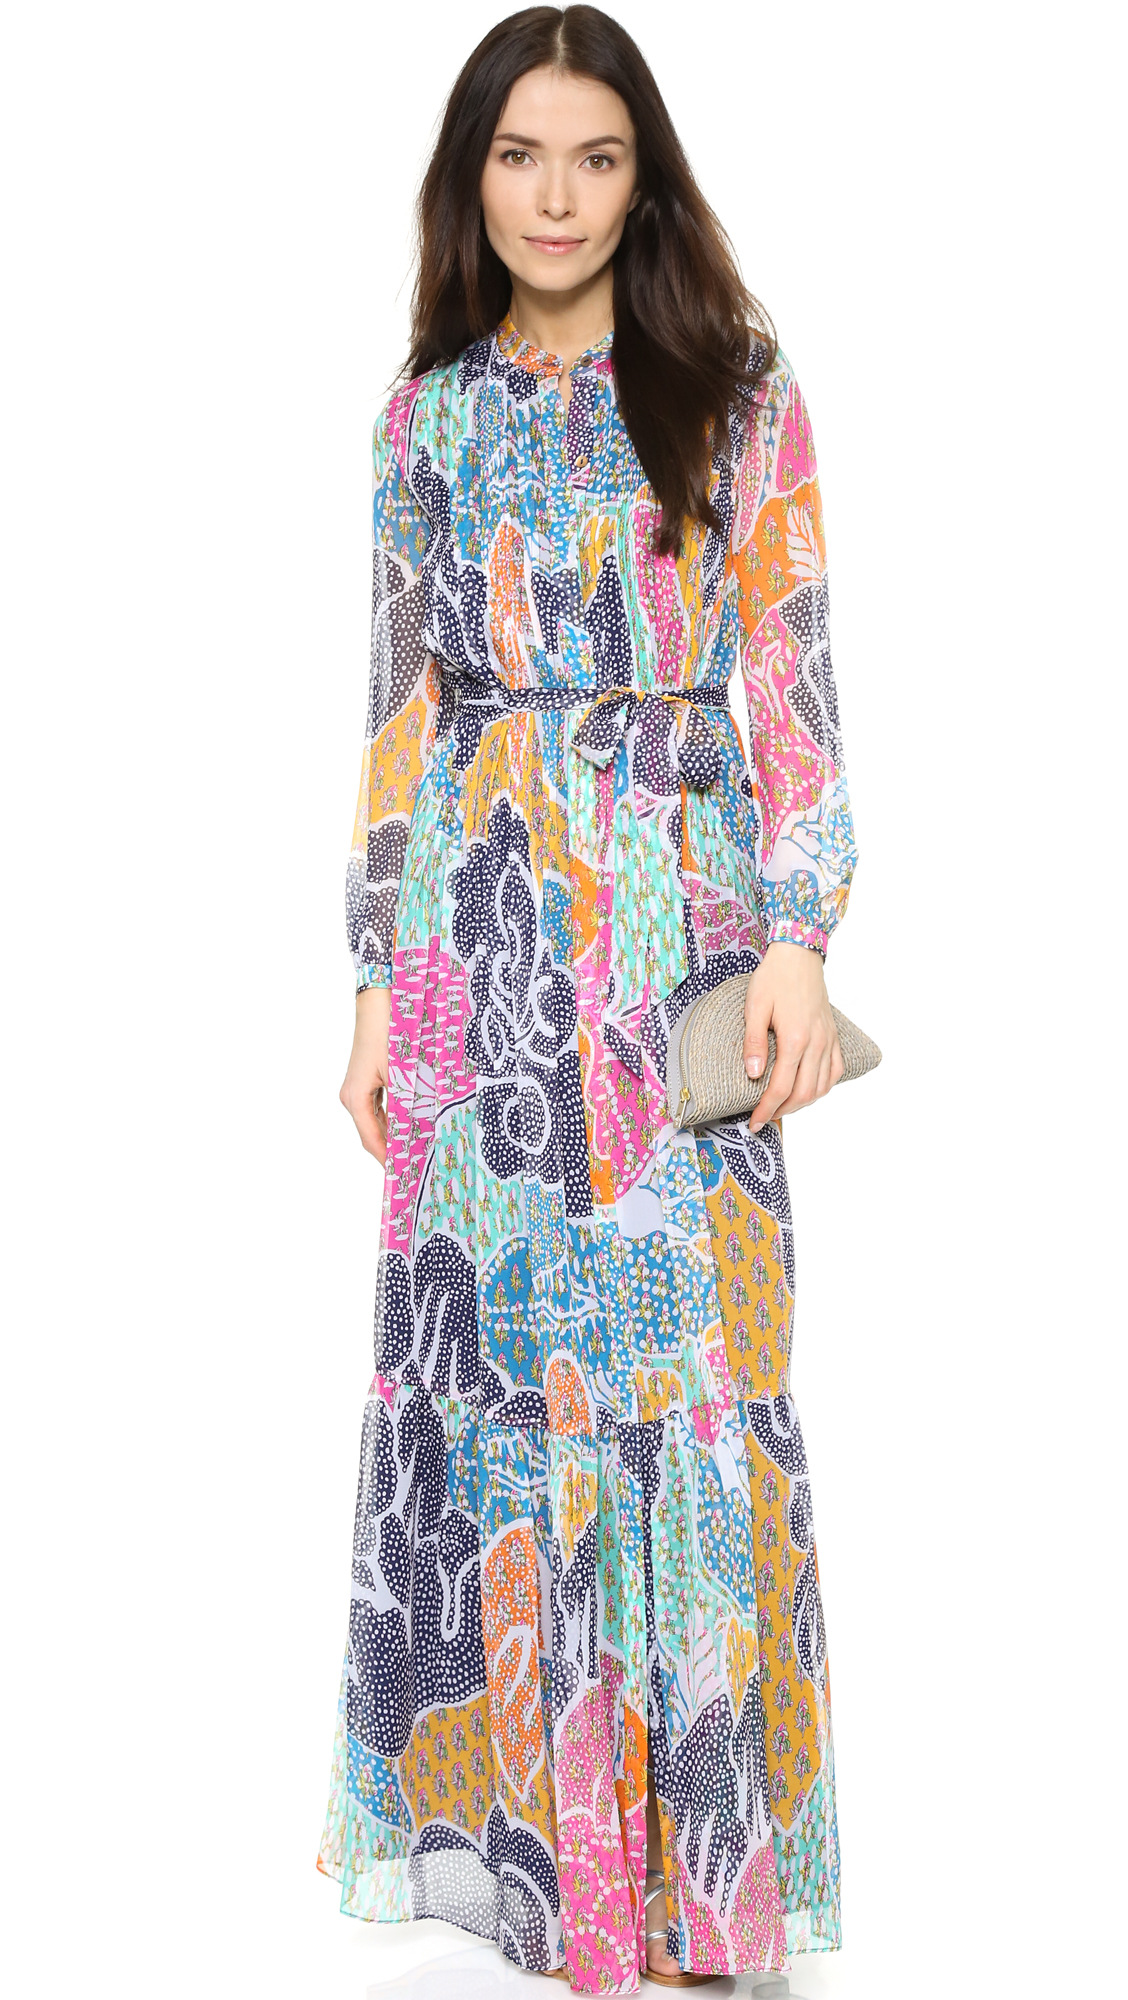 Lyst diane von furstenberg cambrie dress for Diane von furstenberg clothes